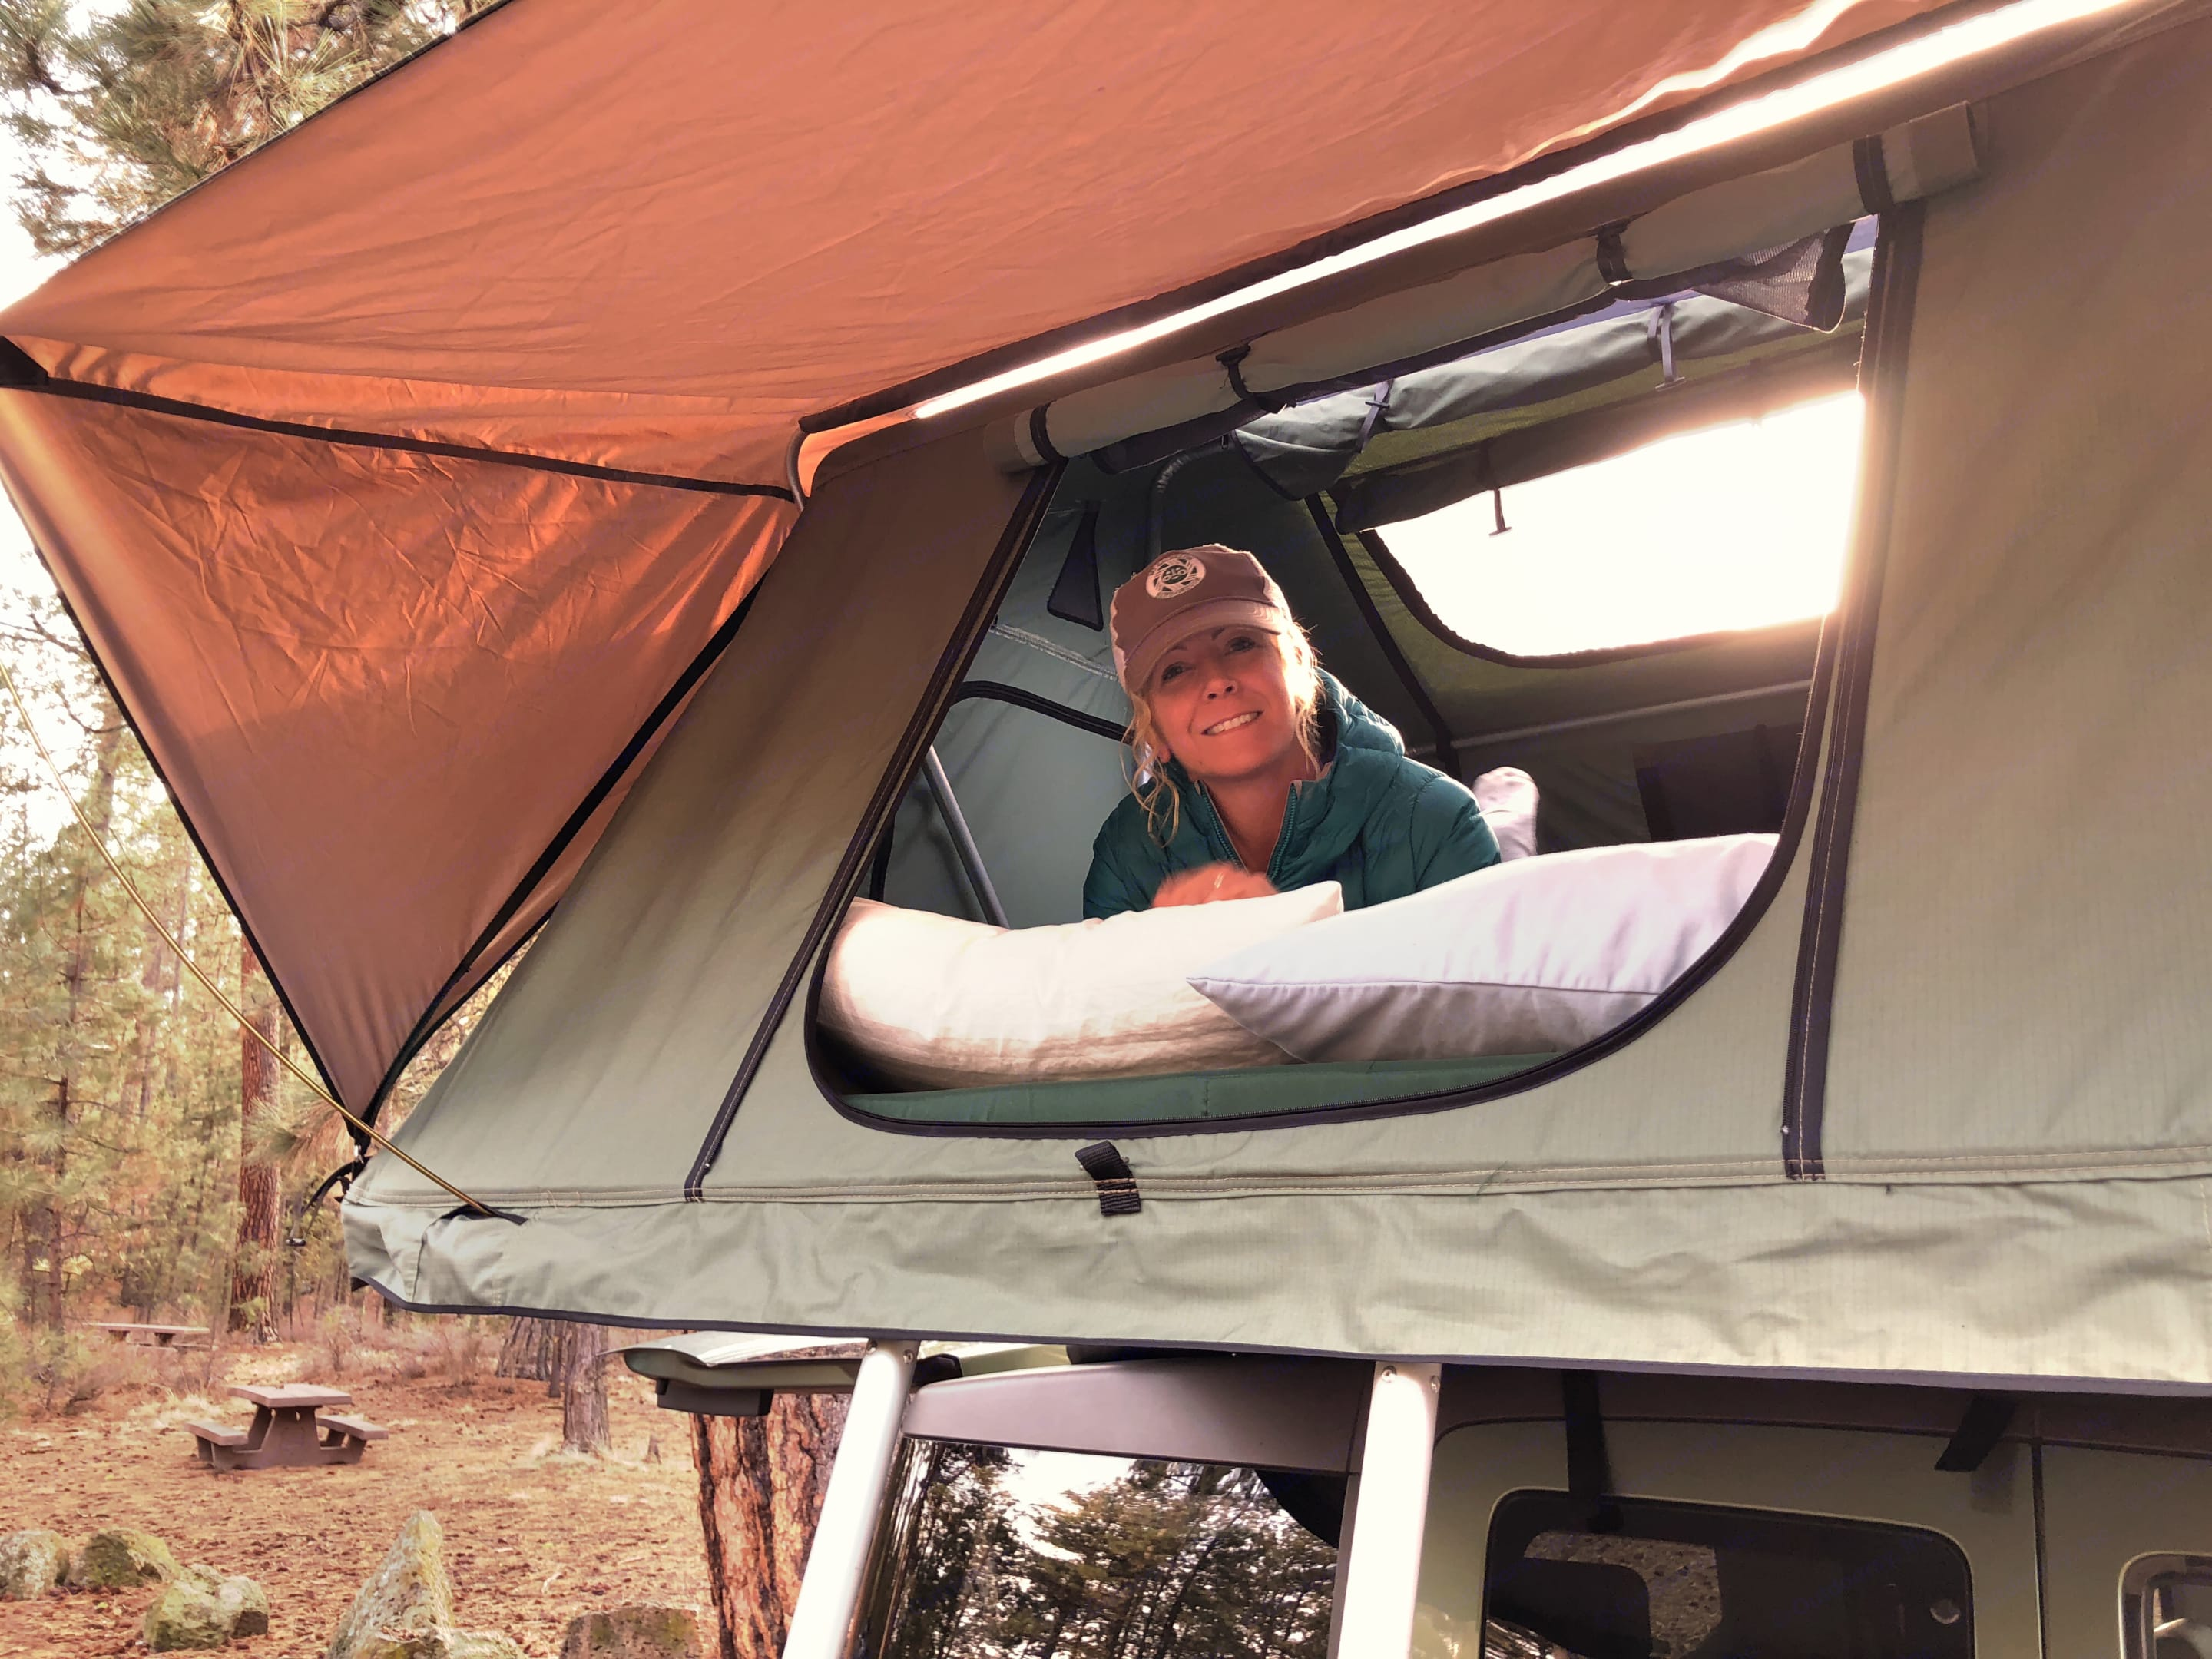 The perfect place to cozy up after a long day of adventures!. Honda Tent on Top 2003